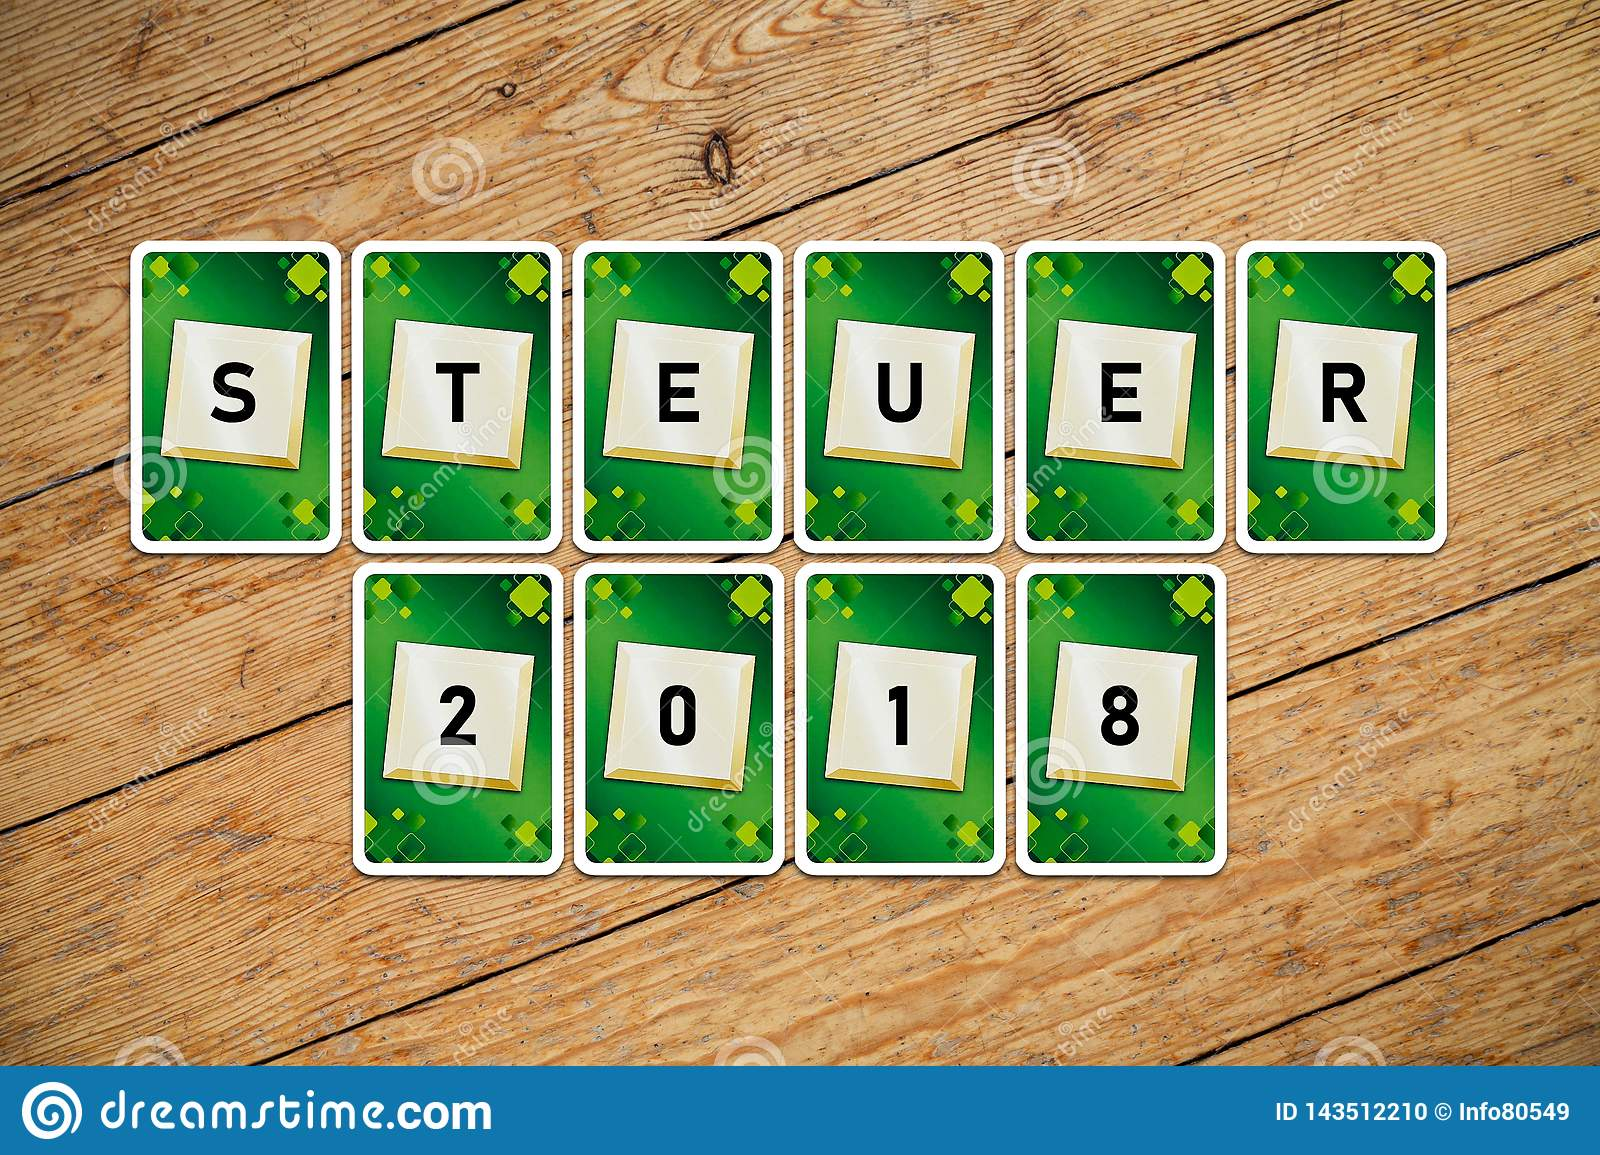 Playing cards with text `Steuer 2018` on a wooden floor